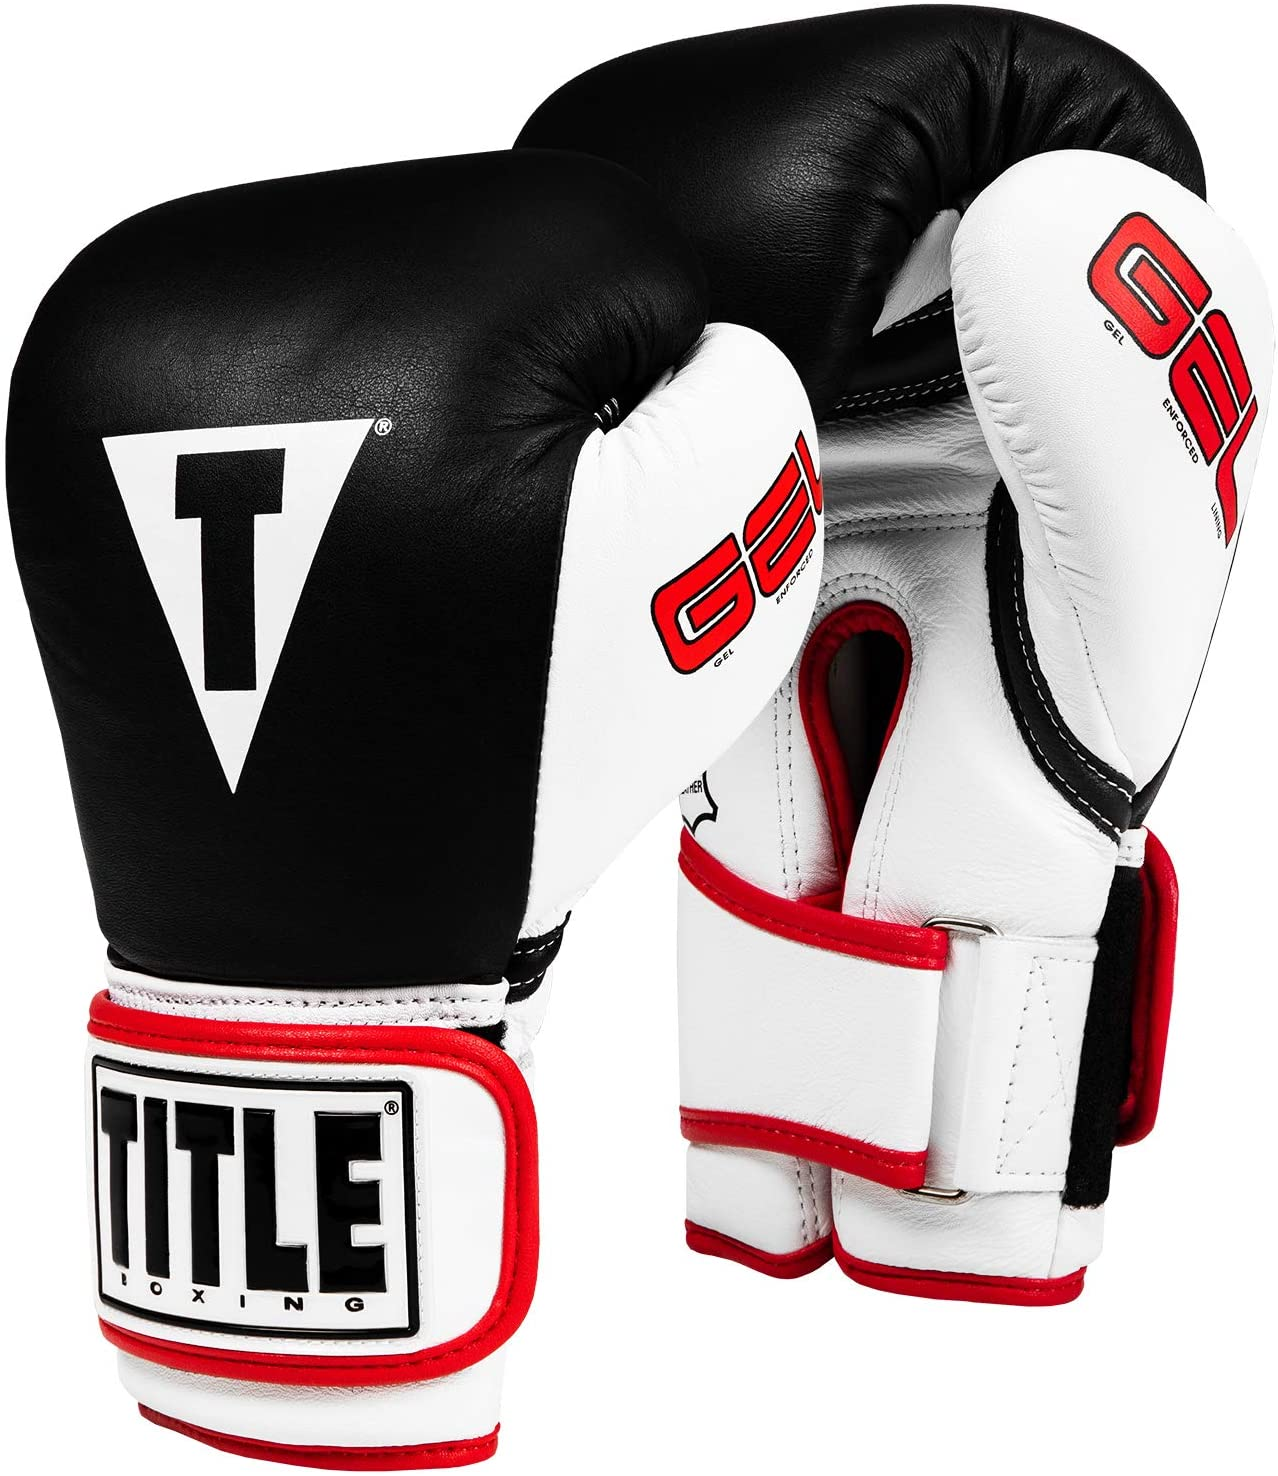 title gel boxing gloves